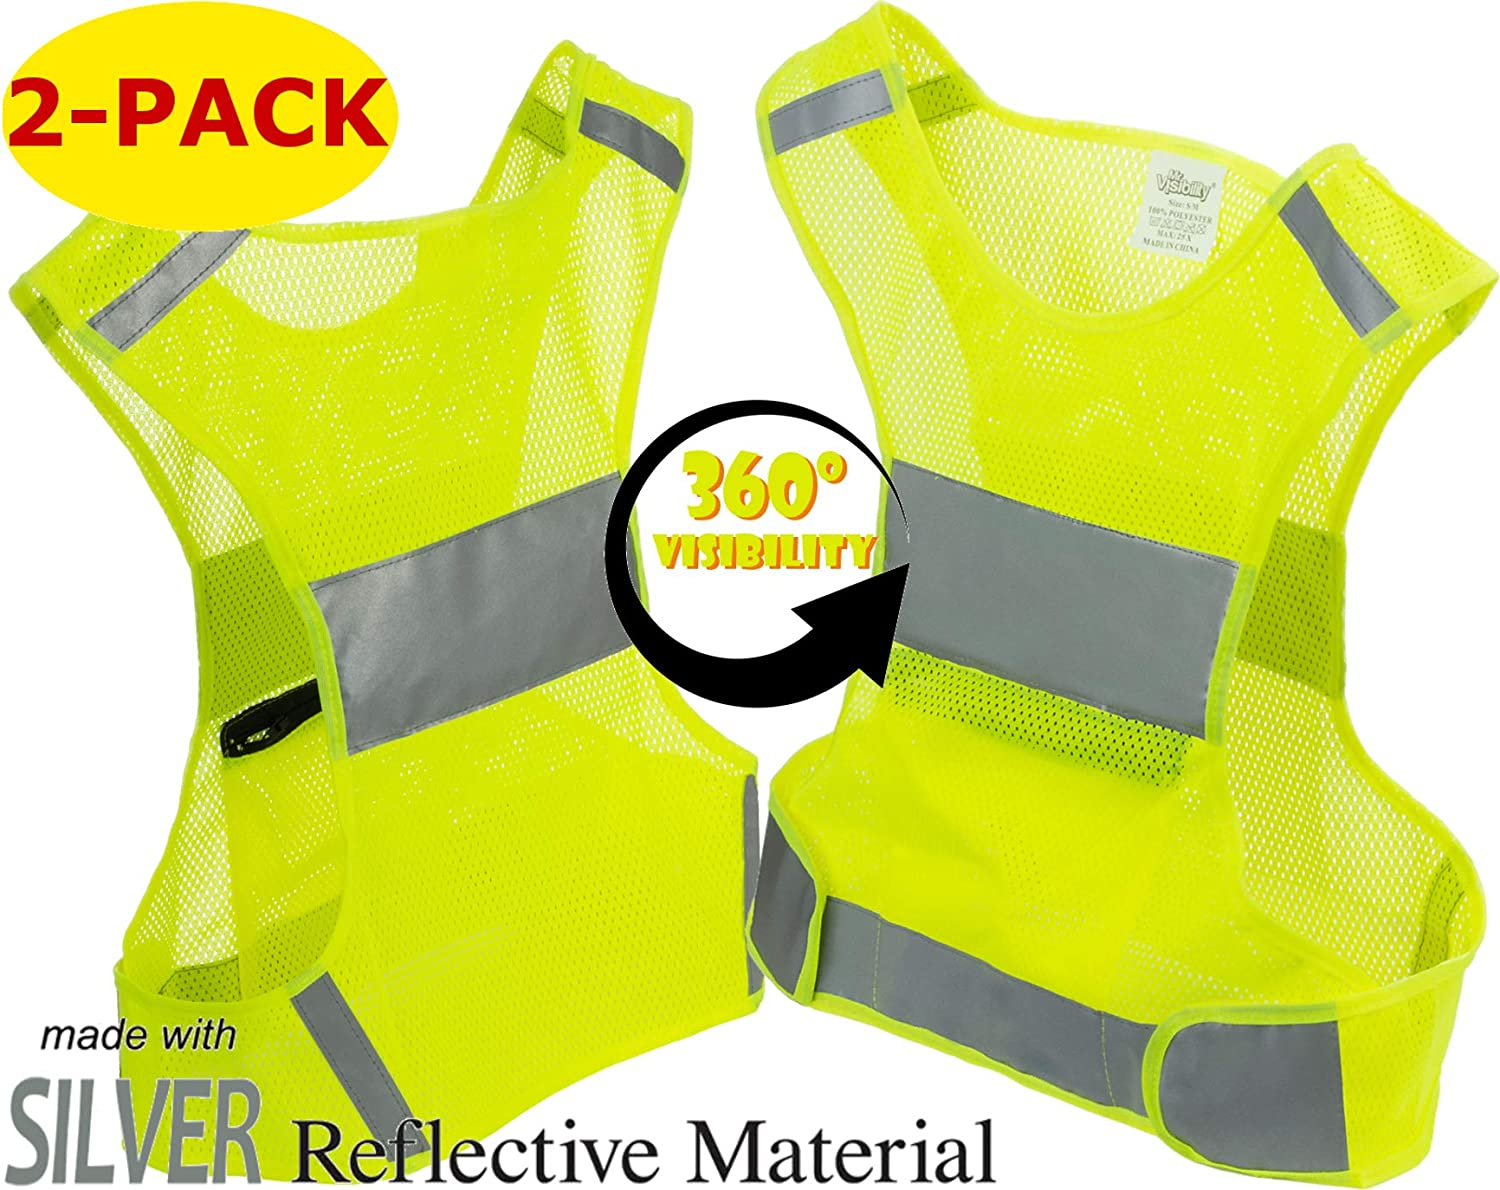 FaitPourU 3 Pack Reflective Vest,Elastic and Adjustable Reflective Gear for Walking,Jogging,Running,Motorcycle,Cycling,360 /º Fluorescent Visibility